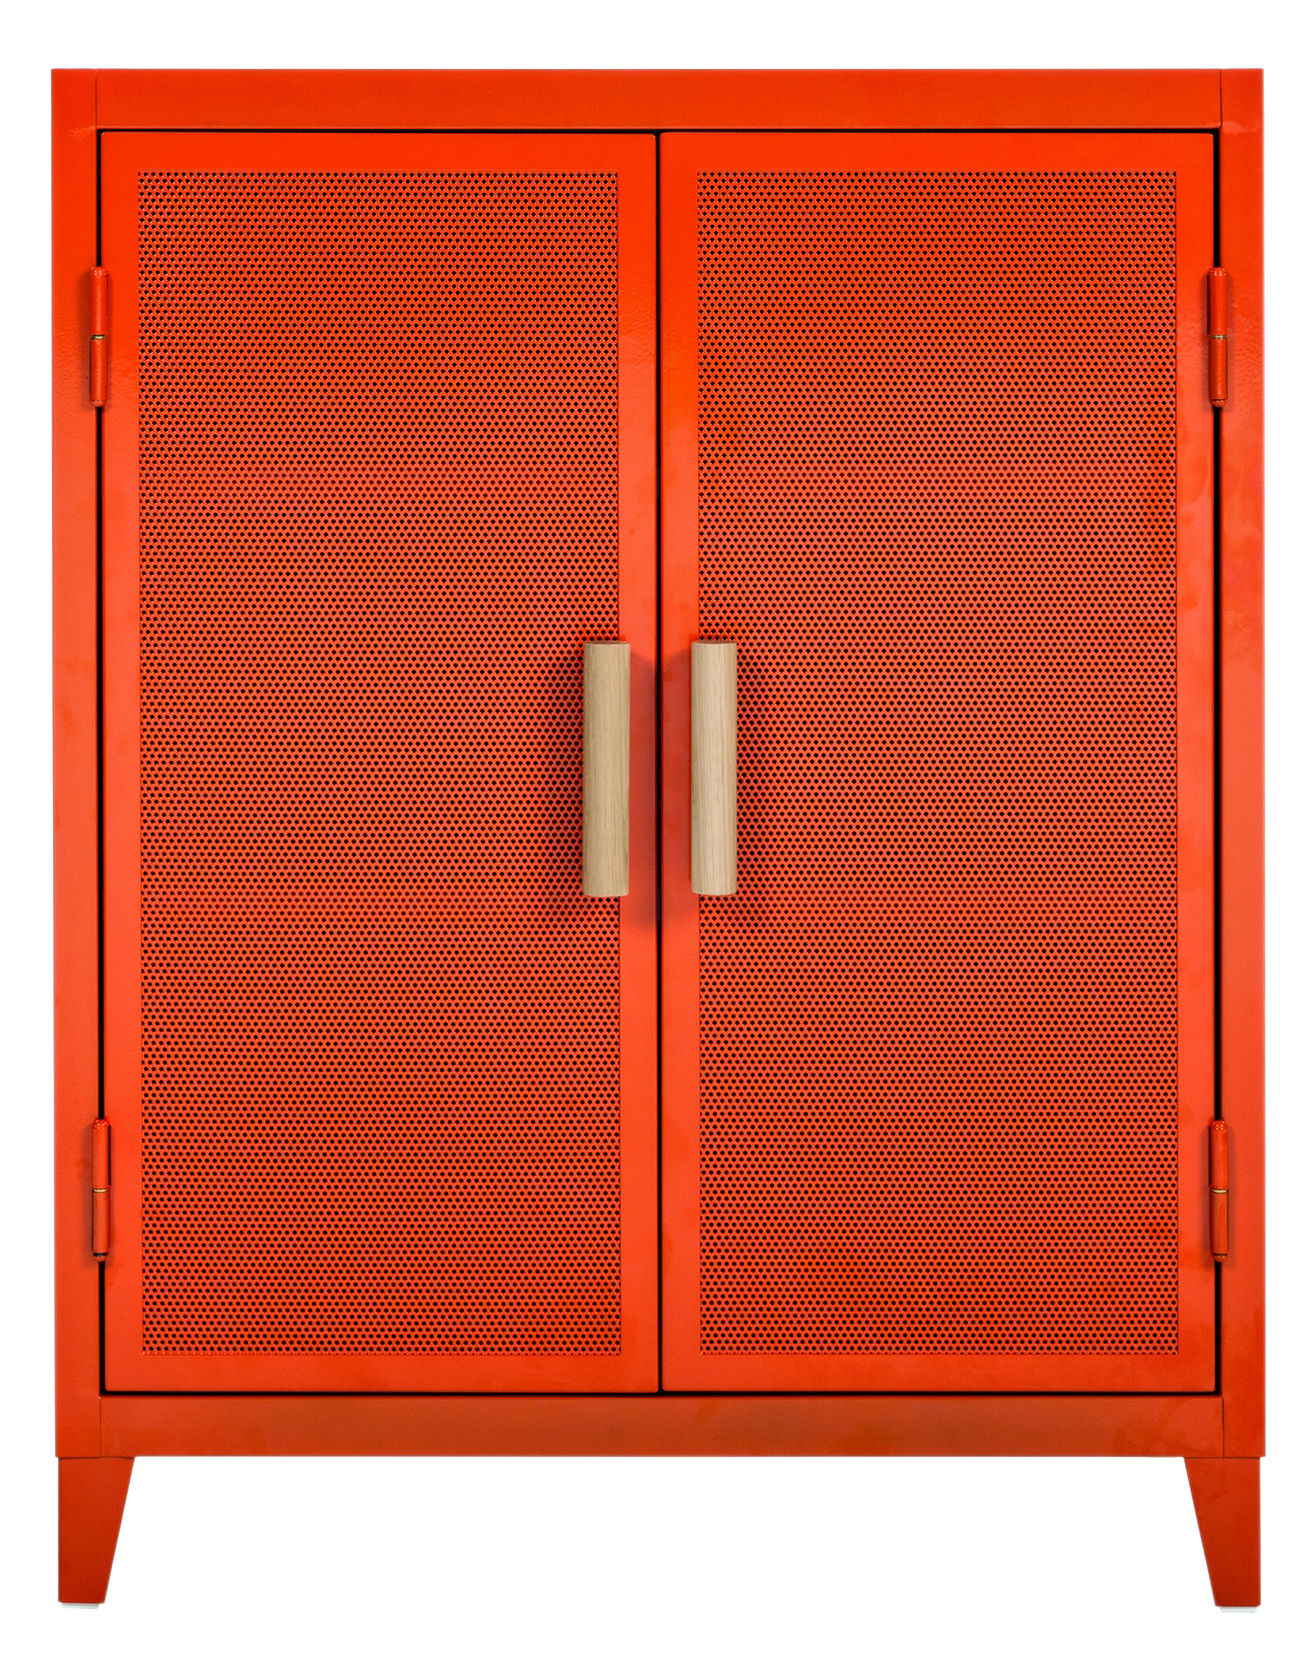 Furniture - Shelves & Storage Furniture - Vestiaire bas Perforé Storage - 2 doors by Tolix - Pumpkin - Lacquered recycled steel, Solid oak